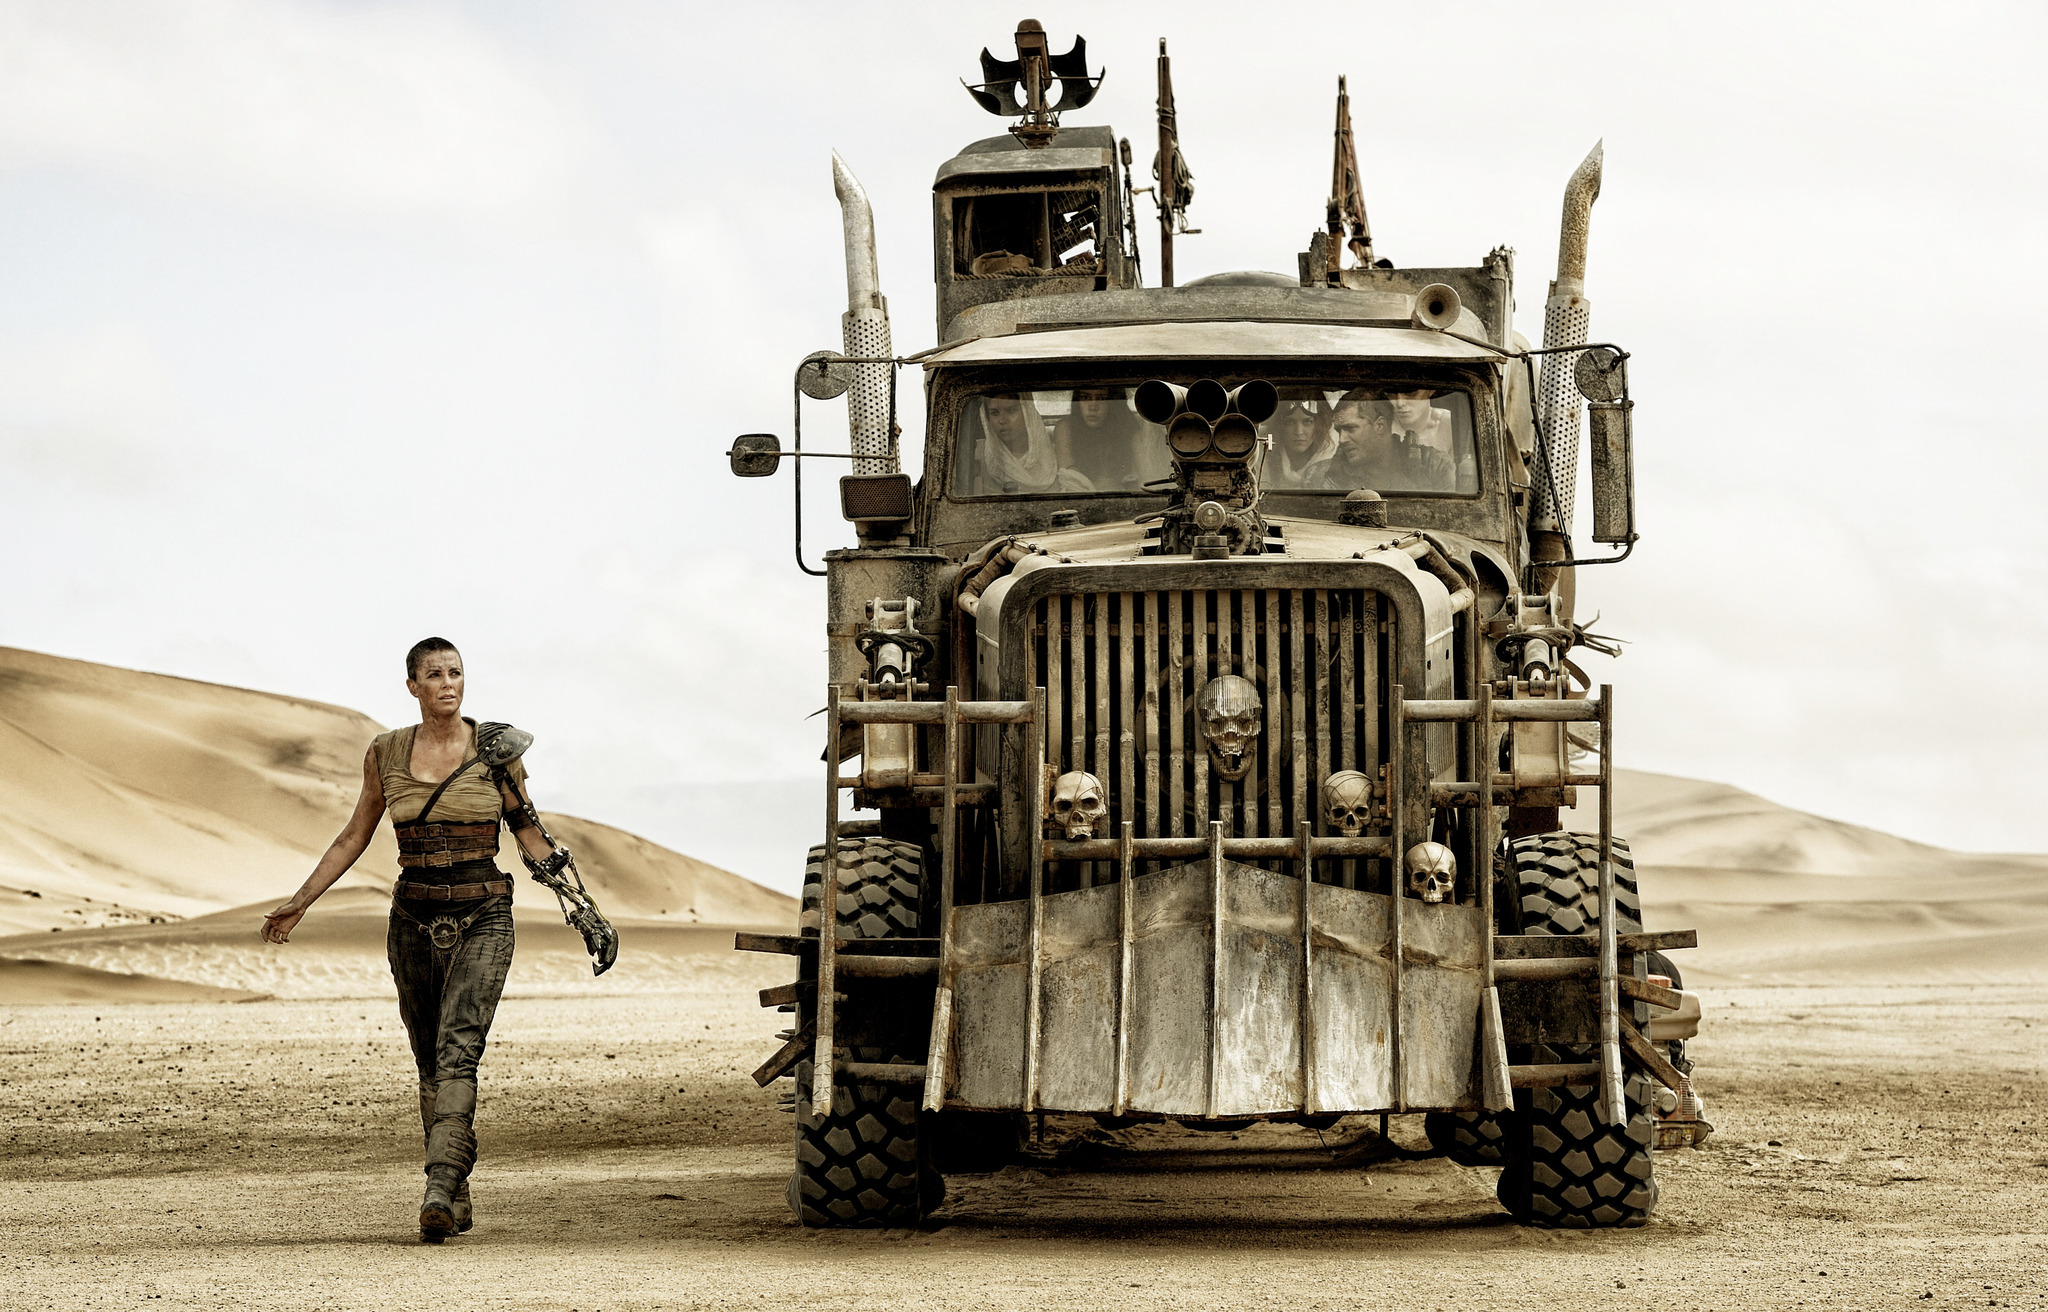 Charlize Theron, Tom Hardy, Nicholas Hoult, Riley Keough, Rosie Huntington-Whiteley, and Courtney Eaton in Mad Max: Fury Road (2015)